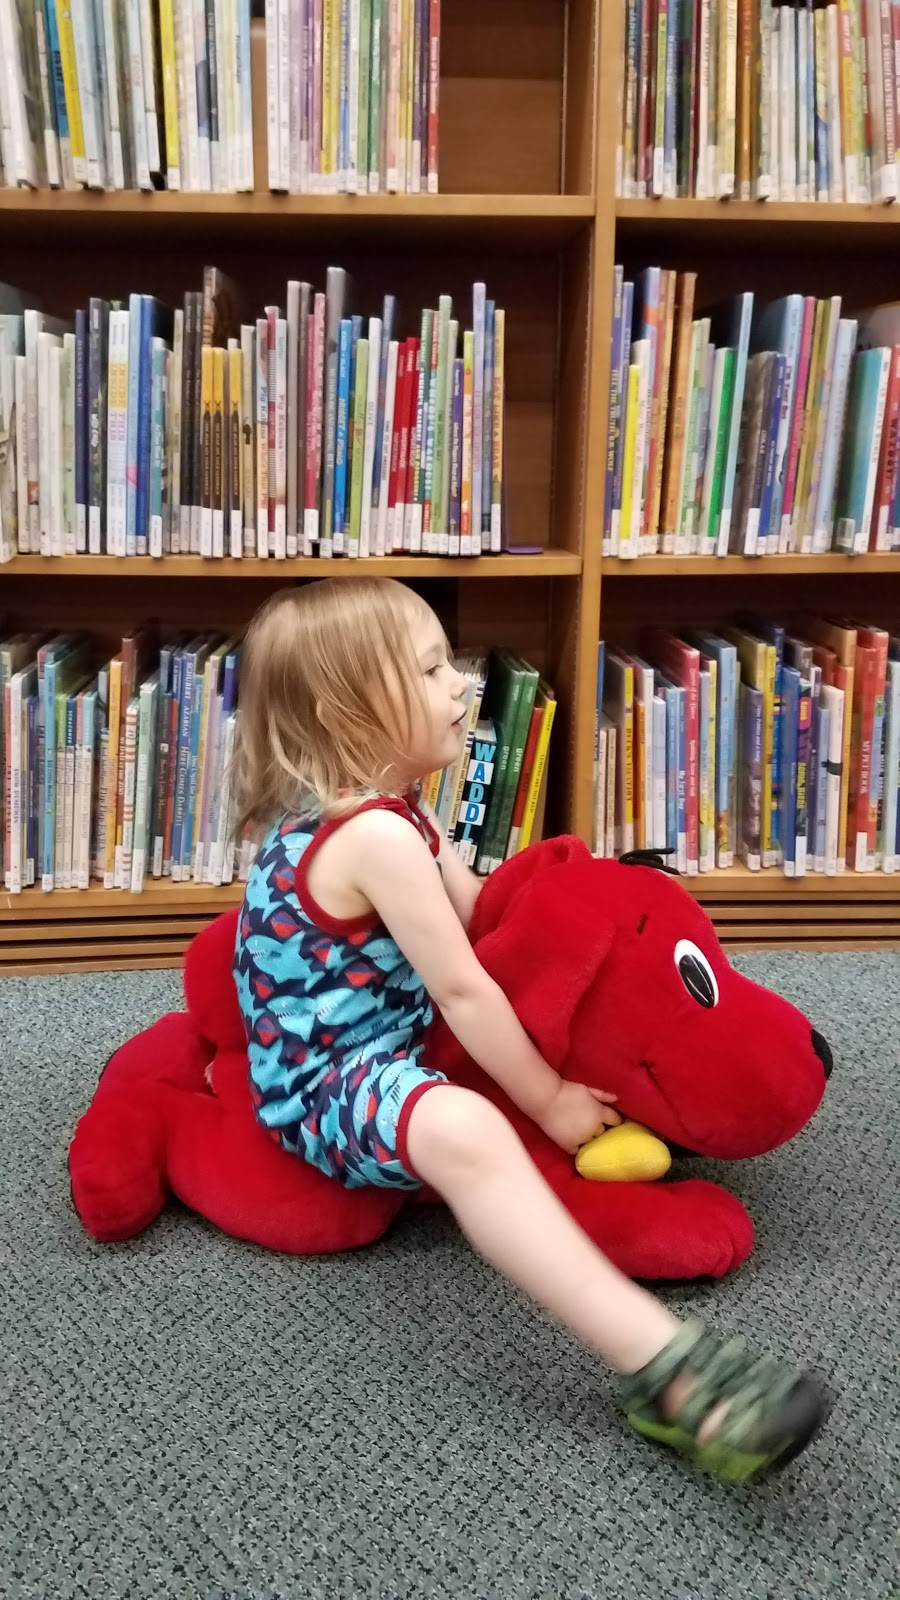 Maplewood Memorial Library - library  | Photo 5 of 10 | Address: 51 Baker St, Maplewood, NJ 07040, USA | Phone: (973) 762-1560